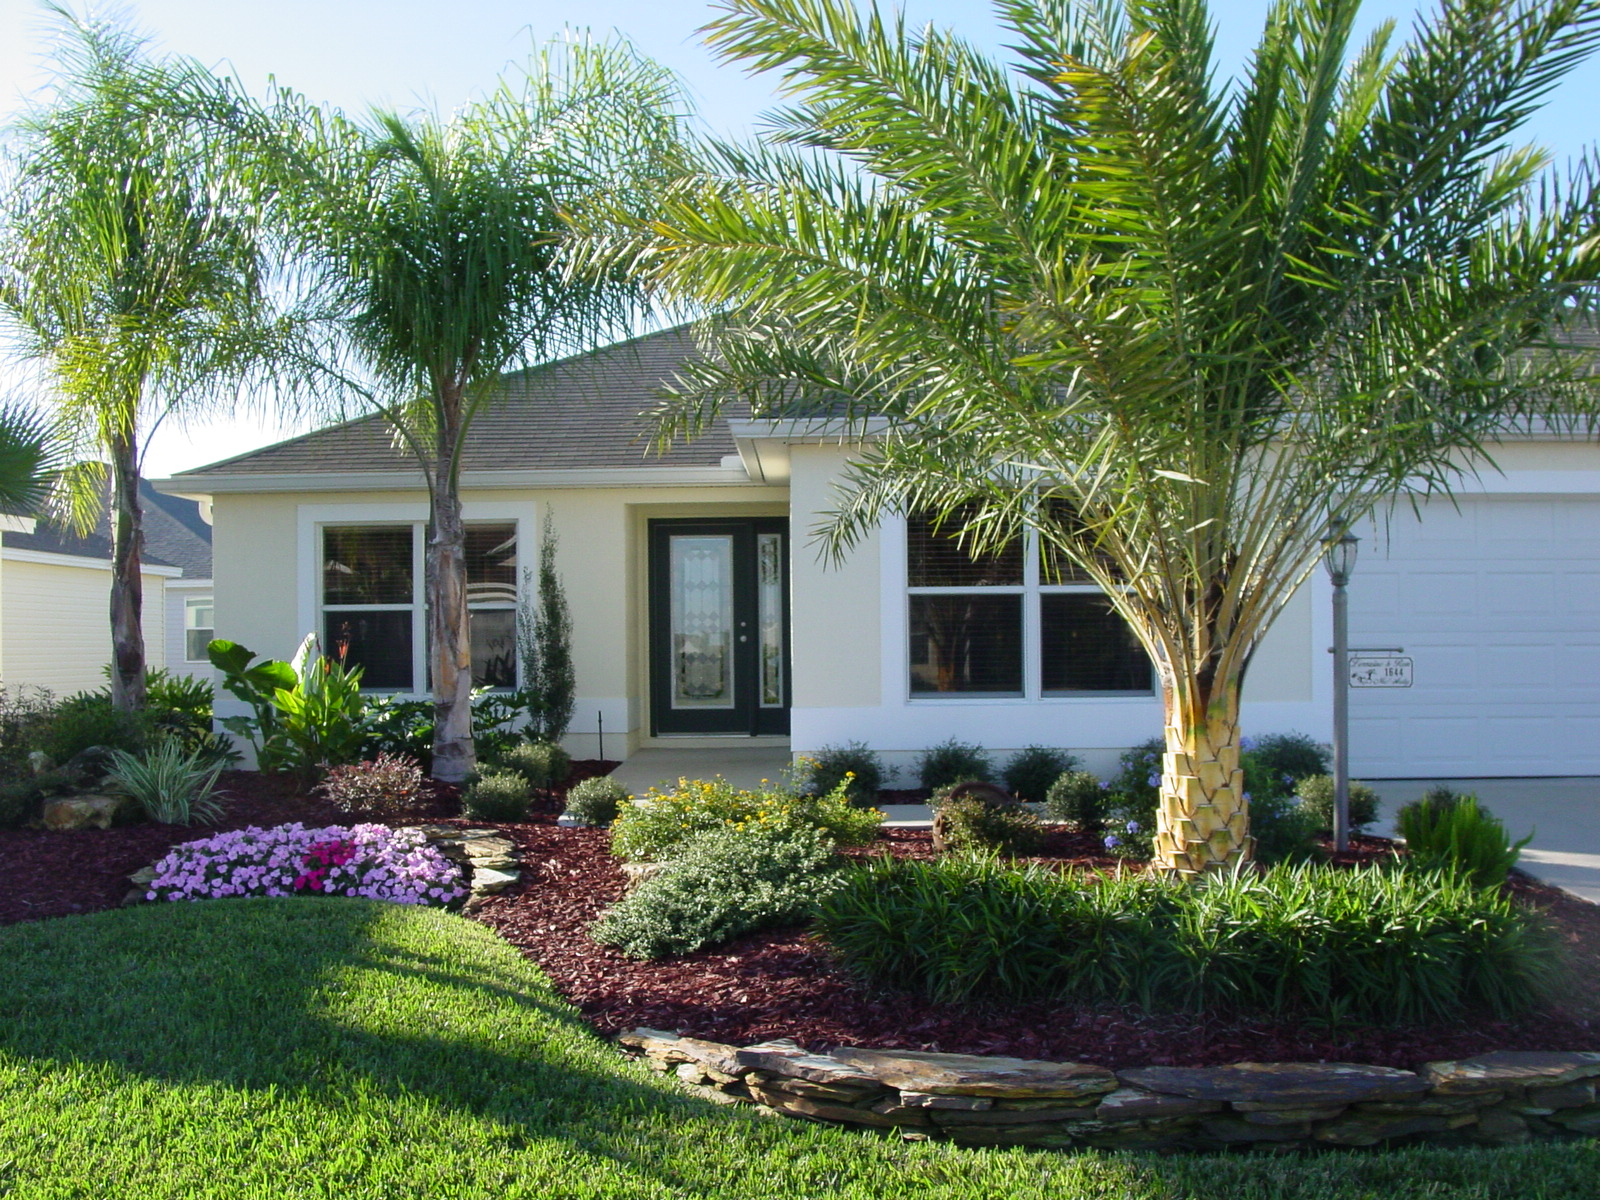 Florida garden landscape ideas photograph rons landscaping for Garden houses designs